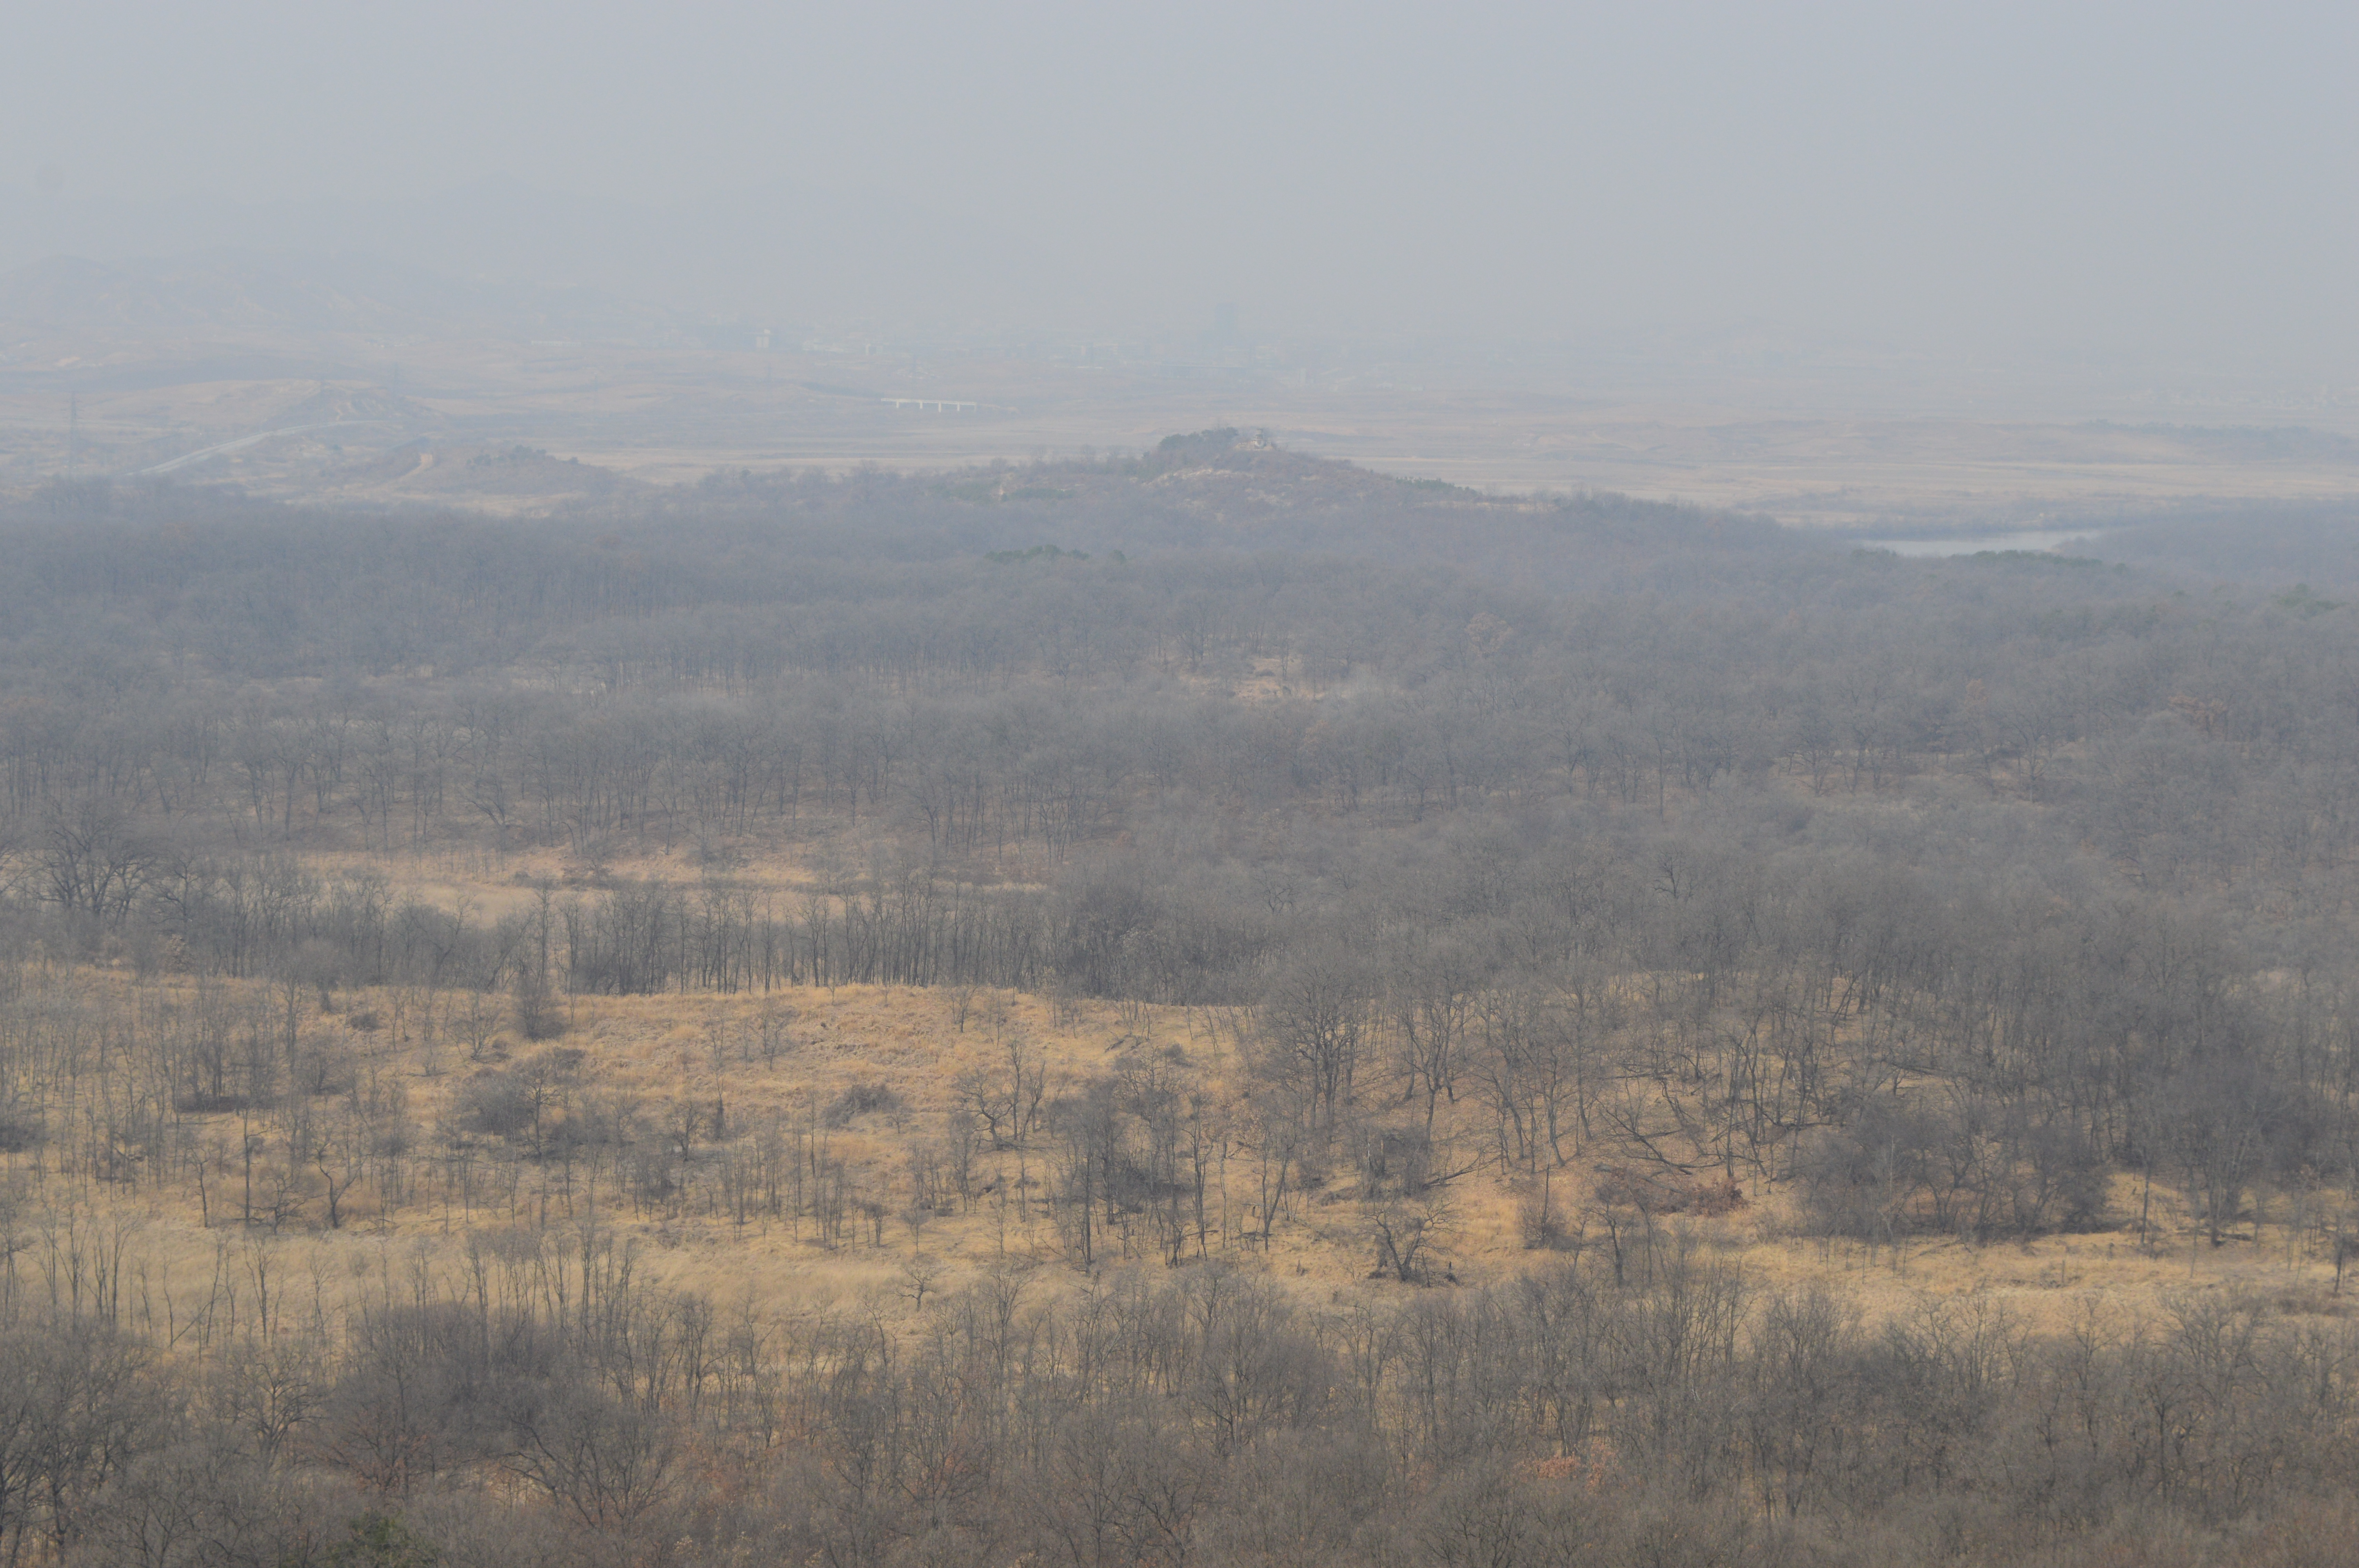 The view of North Korea from the DMZ.